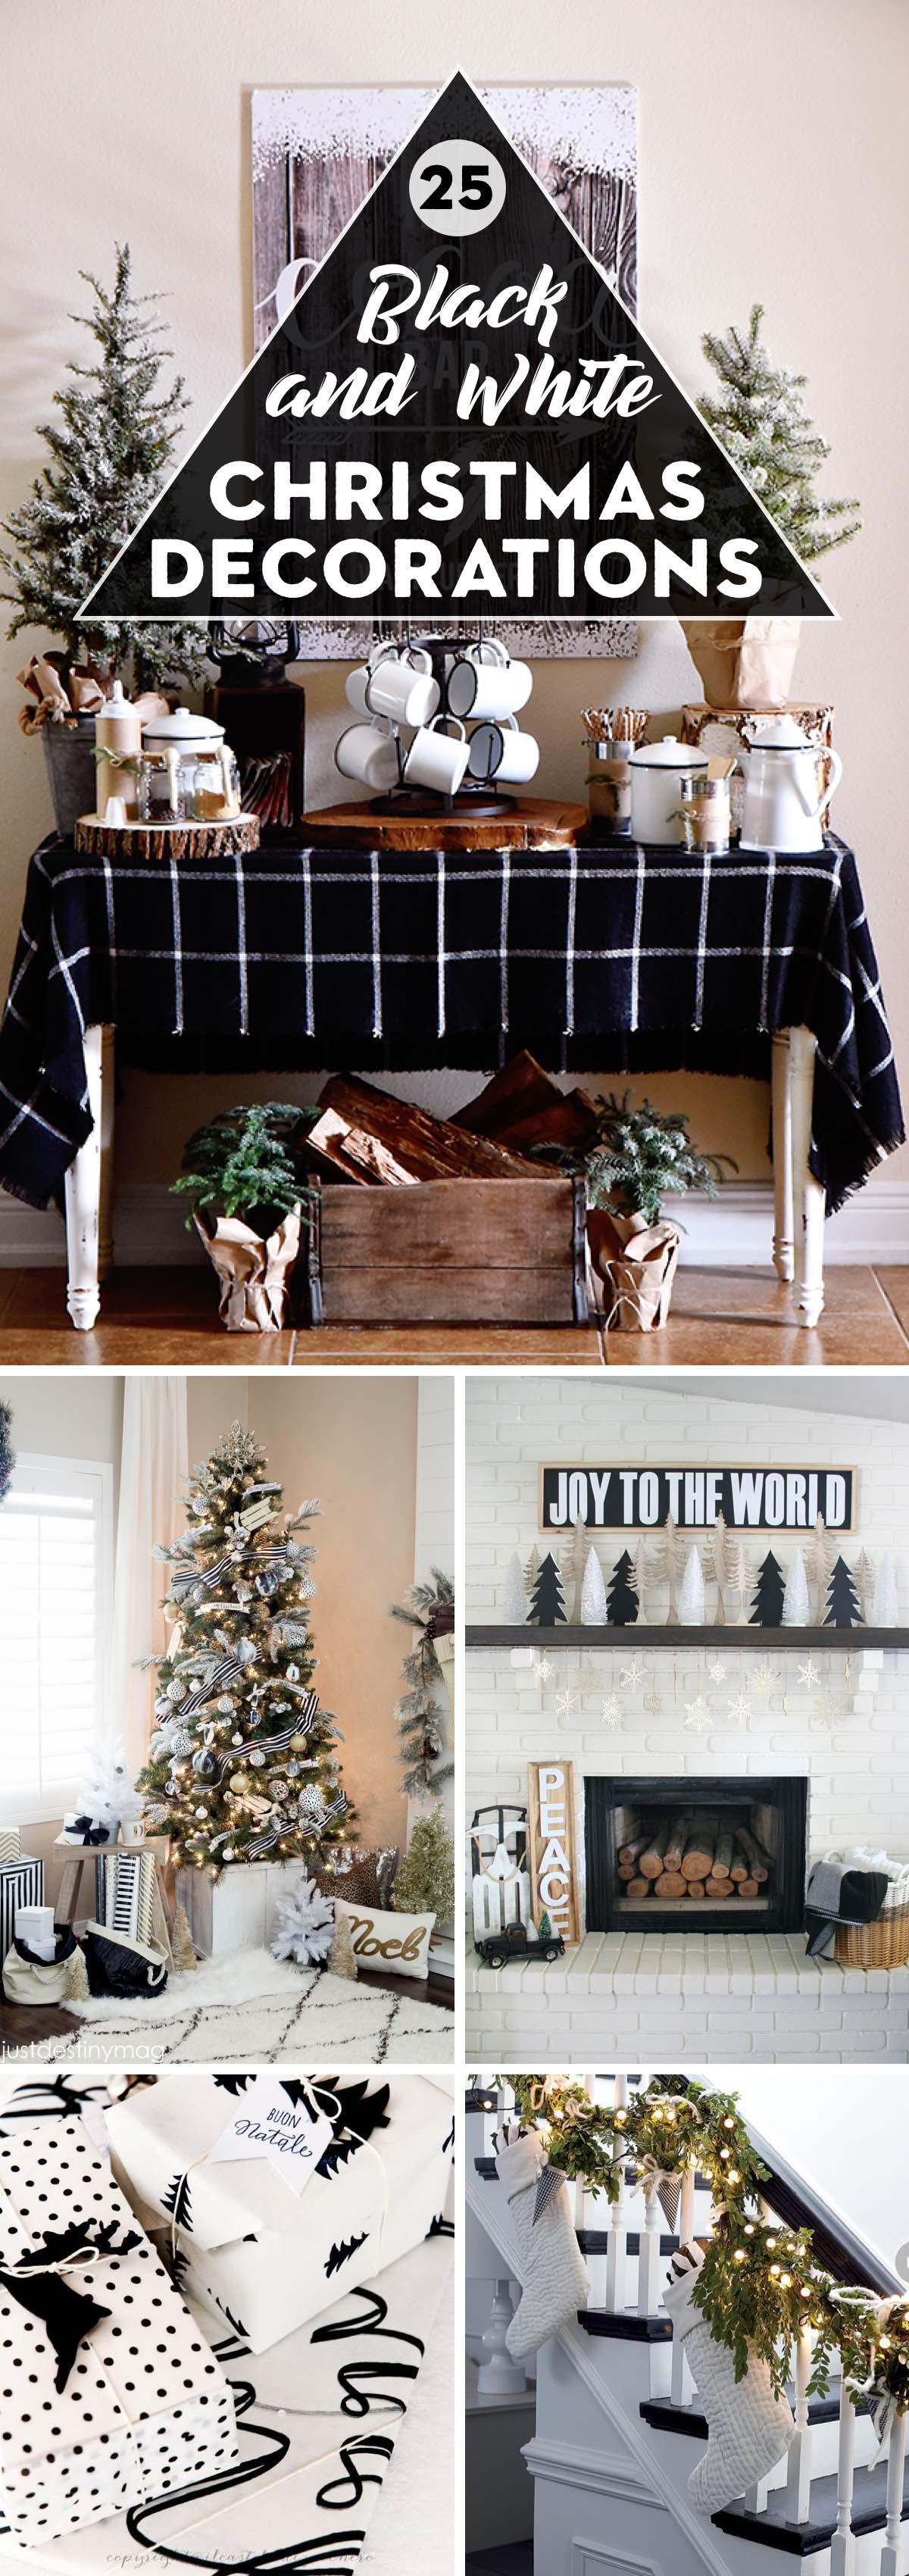 25 black and white christmas decorations sporting the classic color combination